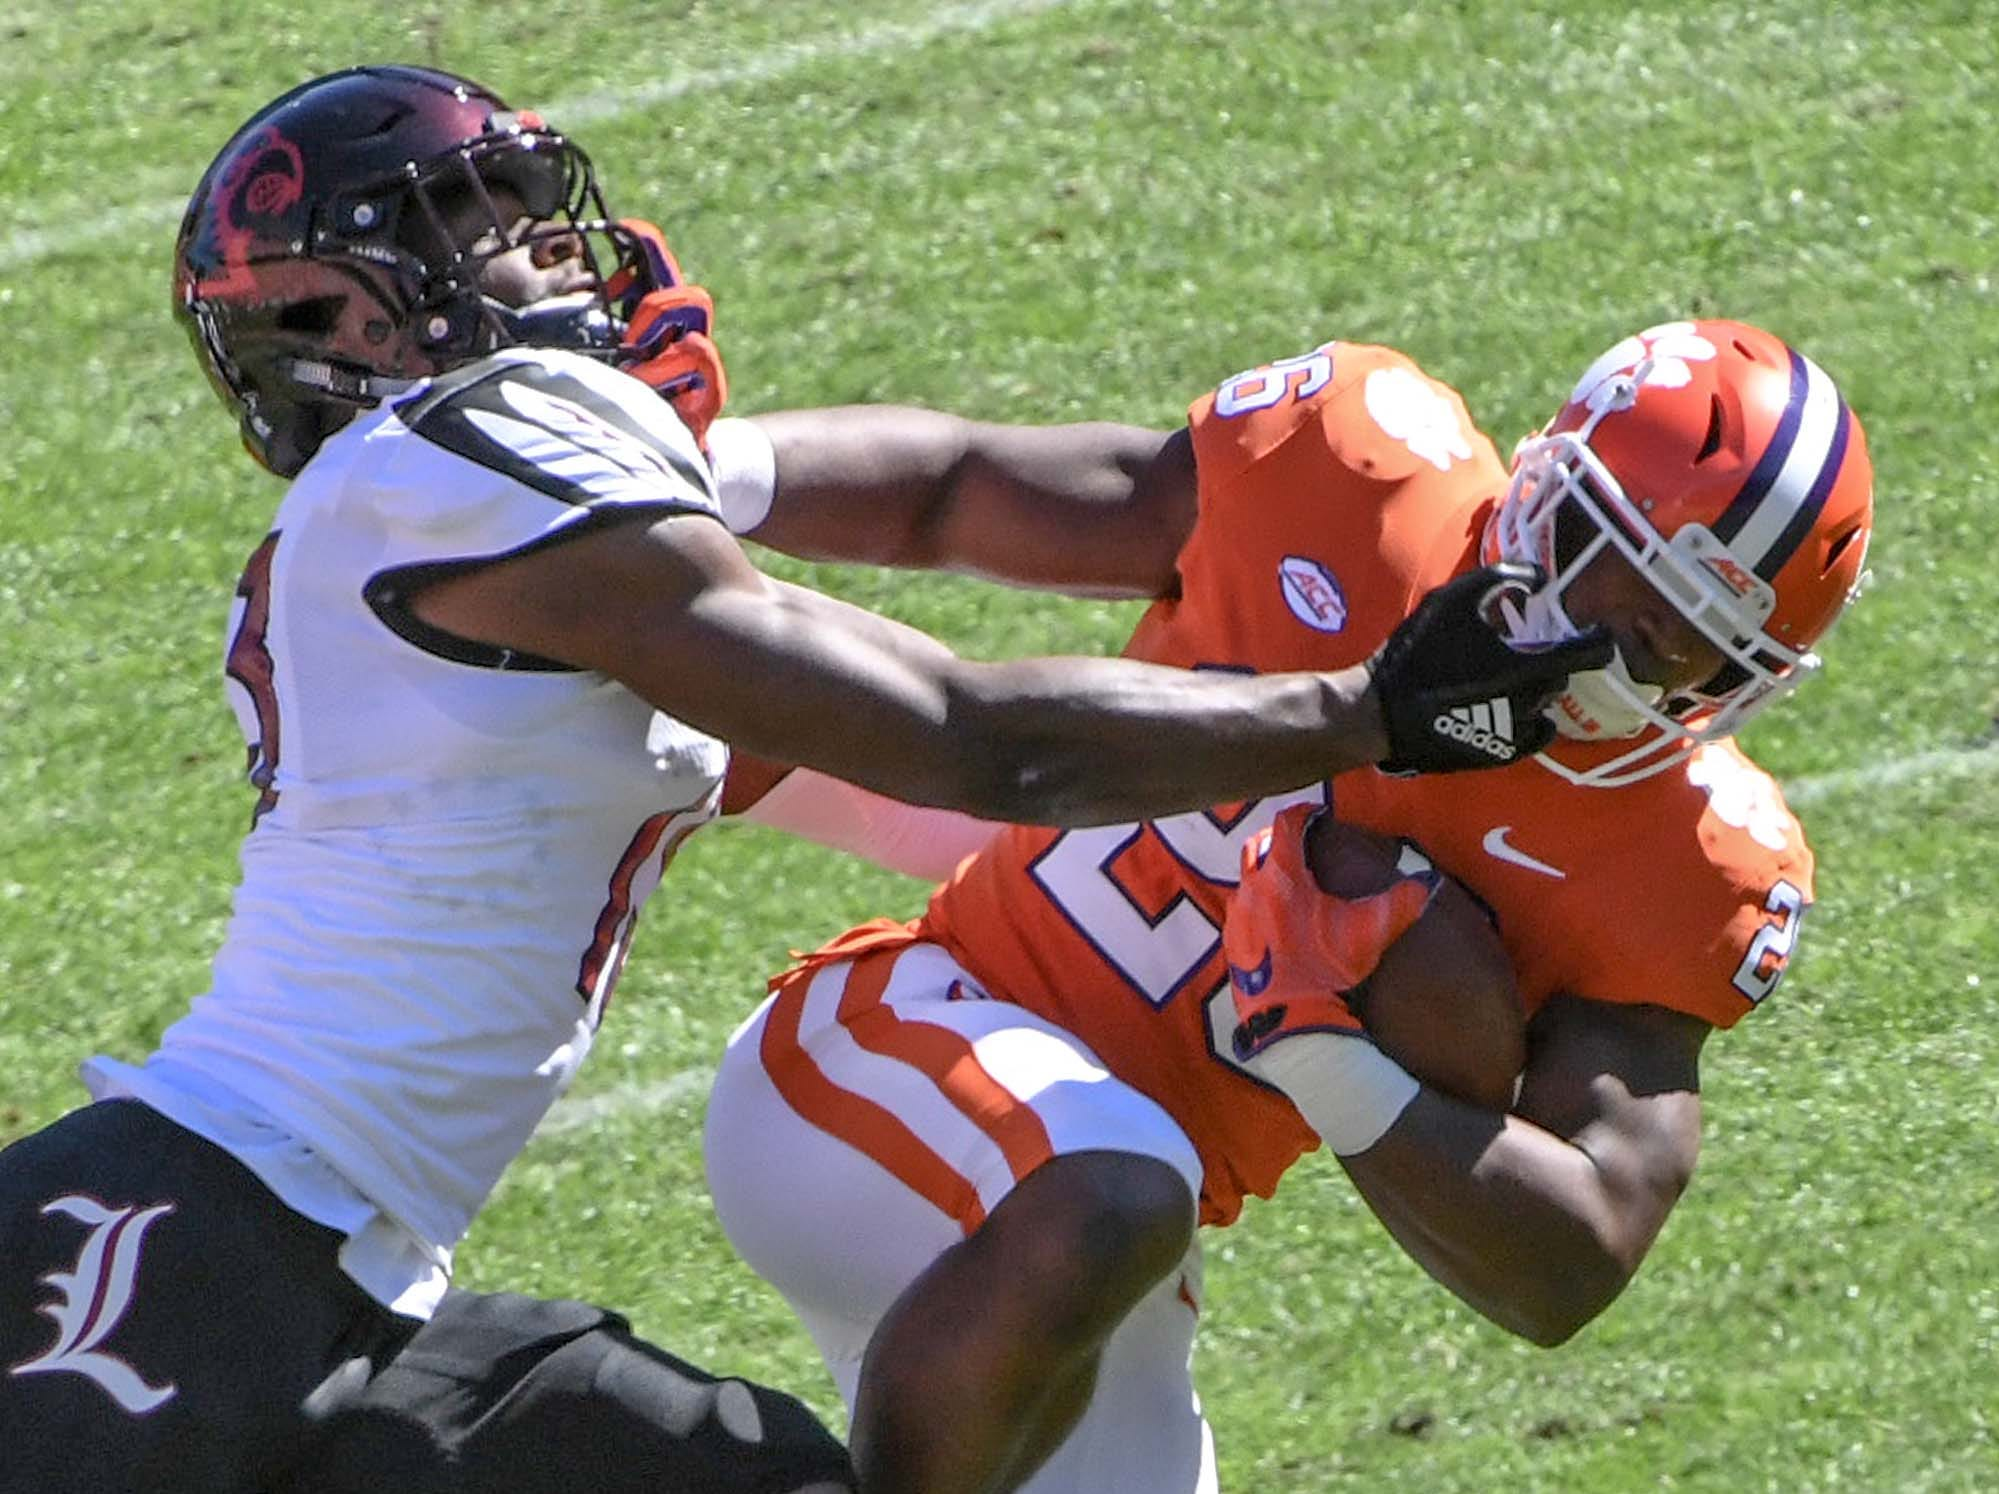 Louisville cornerback Marlon Character(12) reaches to tackle Clemson running back Adam Choice (26) during the first quarter in Memorial Stadium on Saturday, November 3, 2018.